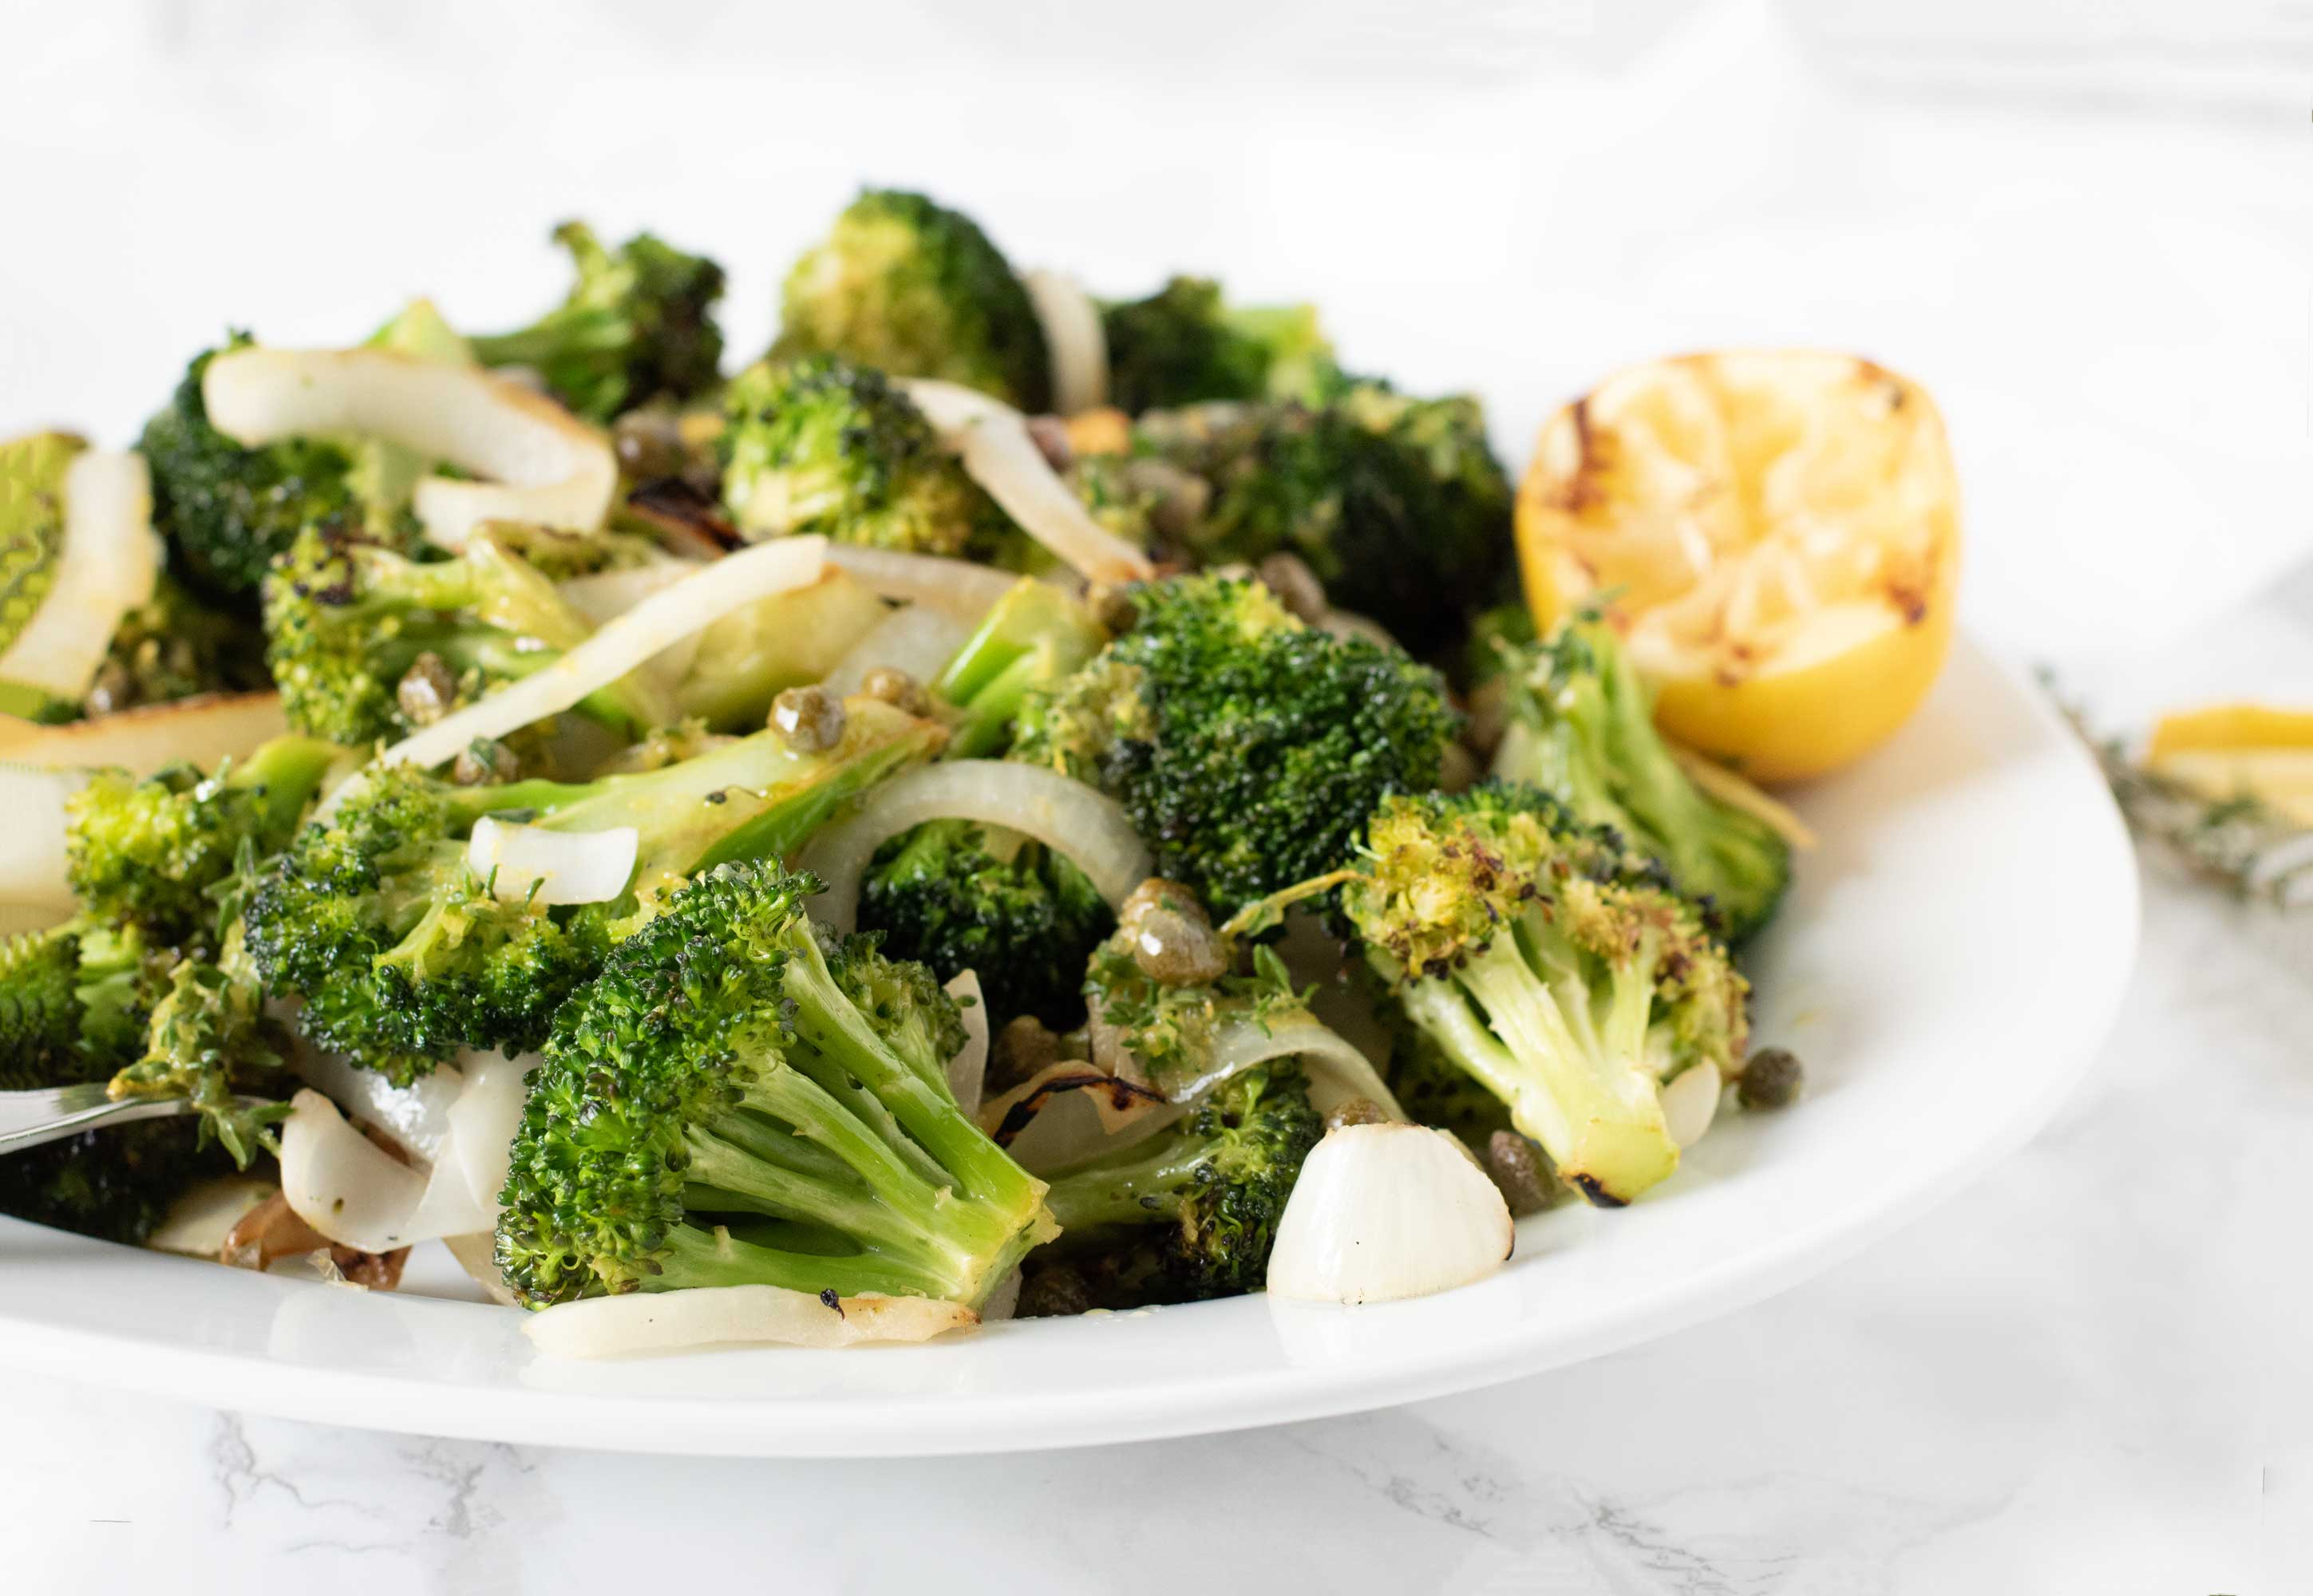 Grilled broccoli and onion